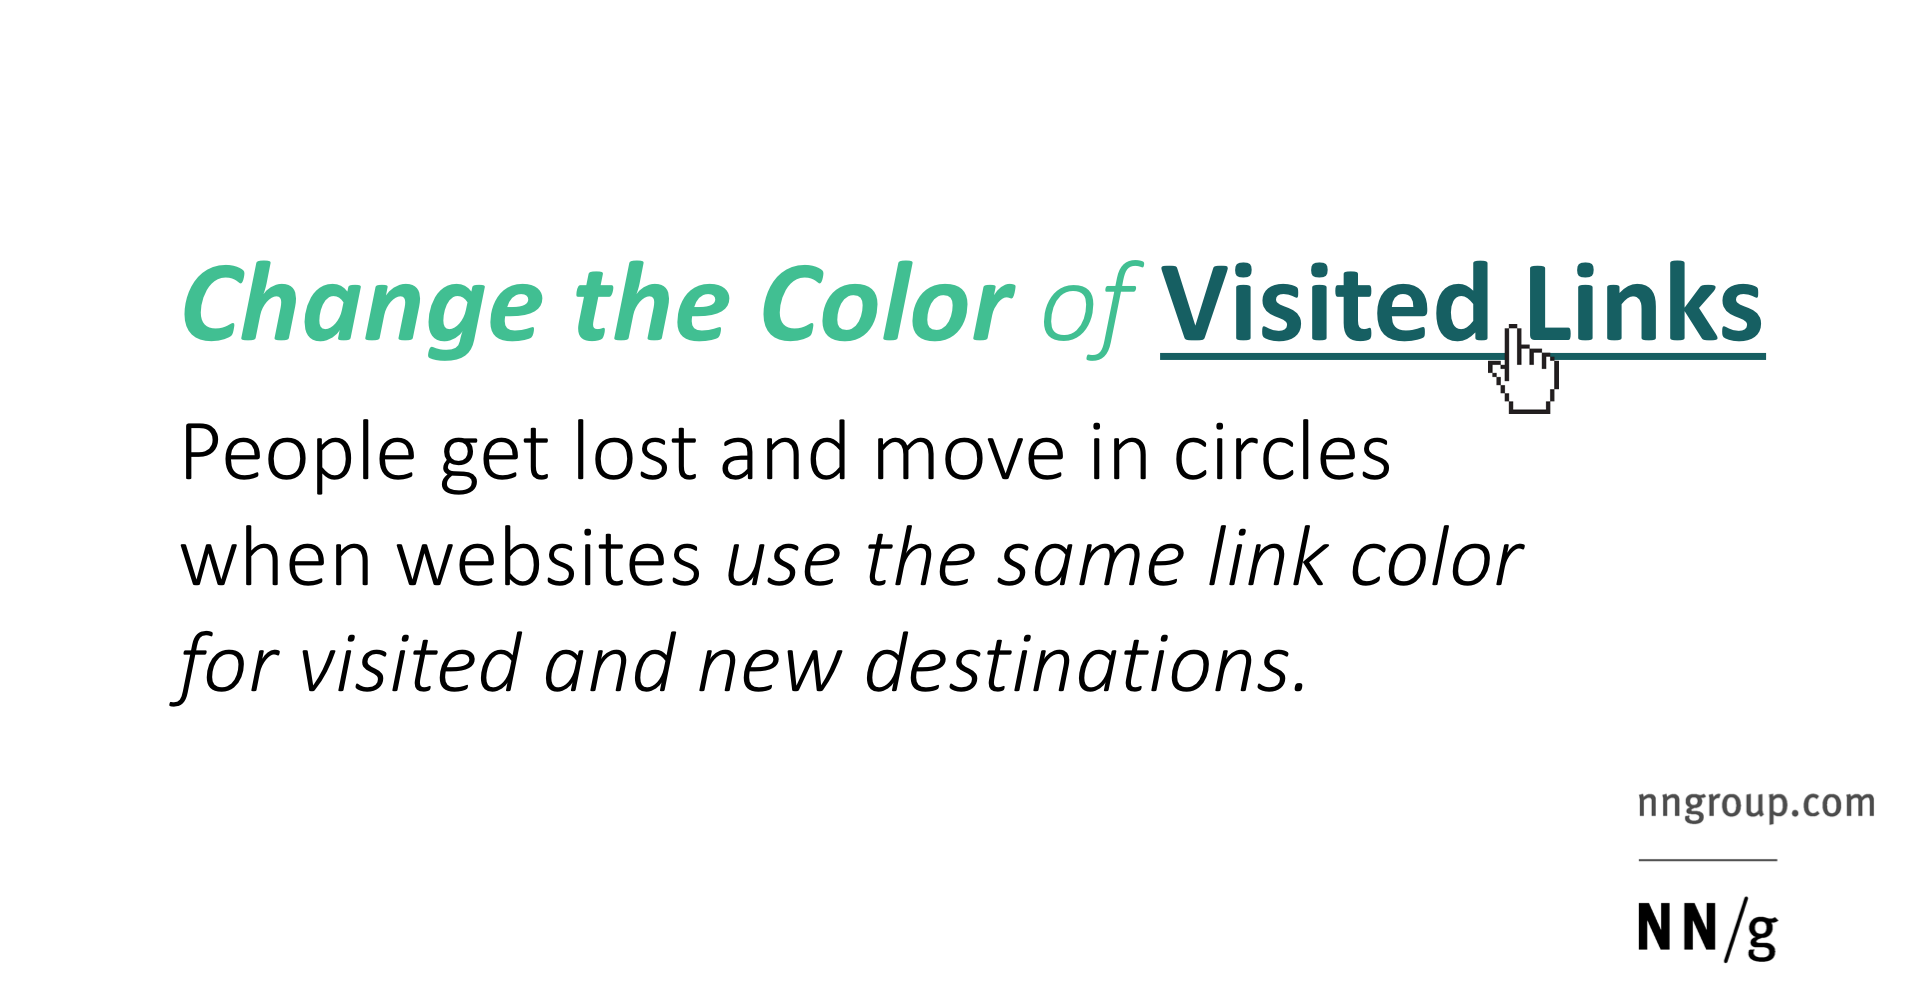 Change the Color of Visited Links